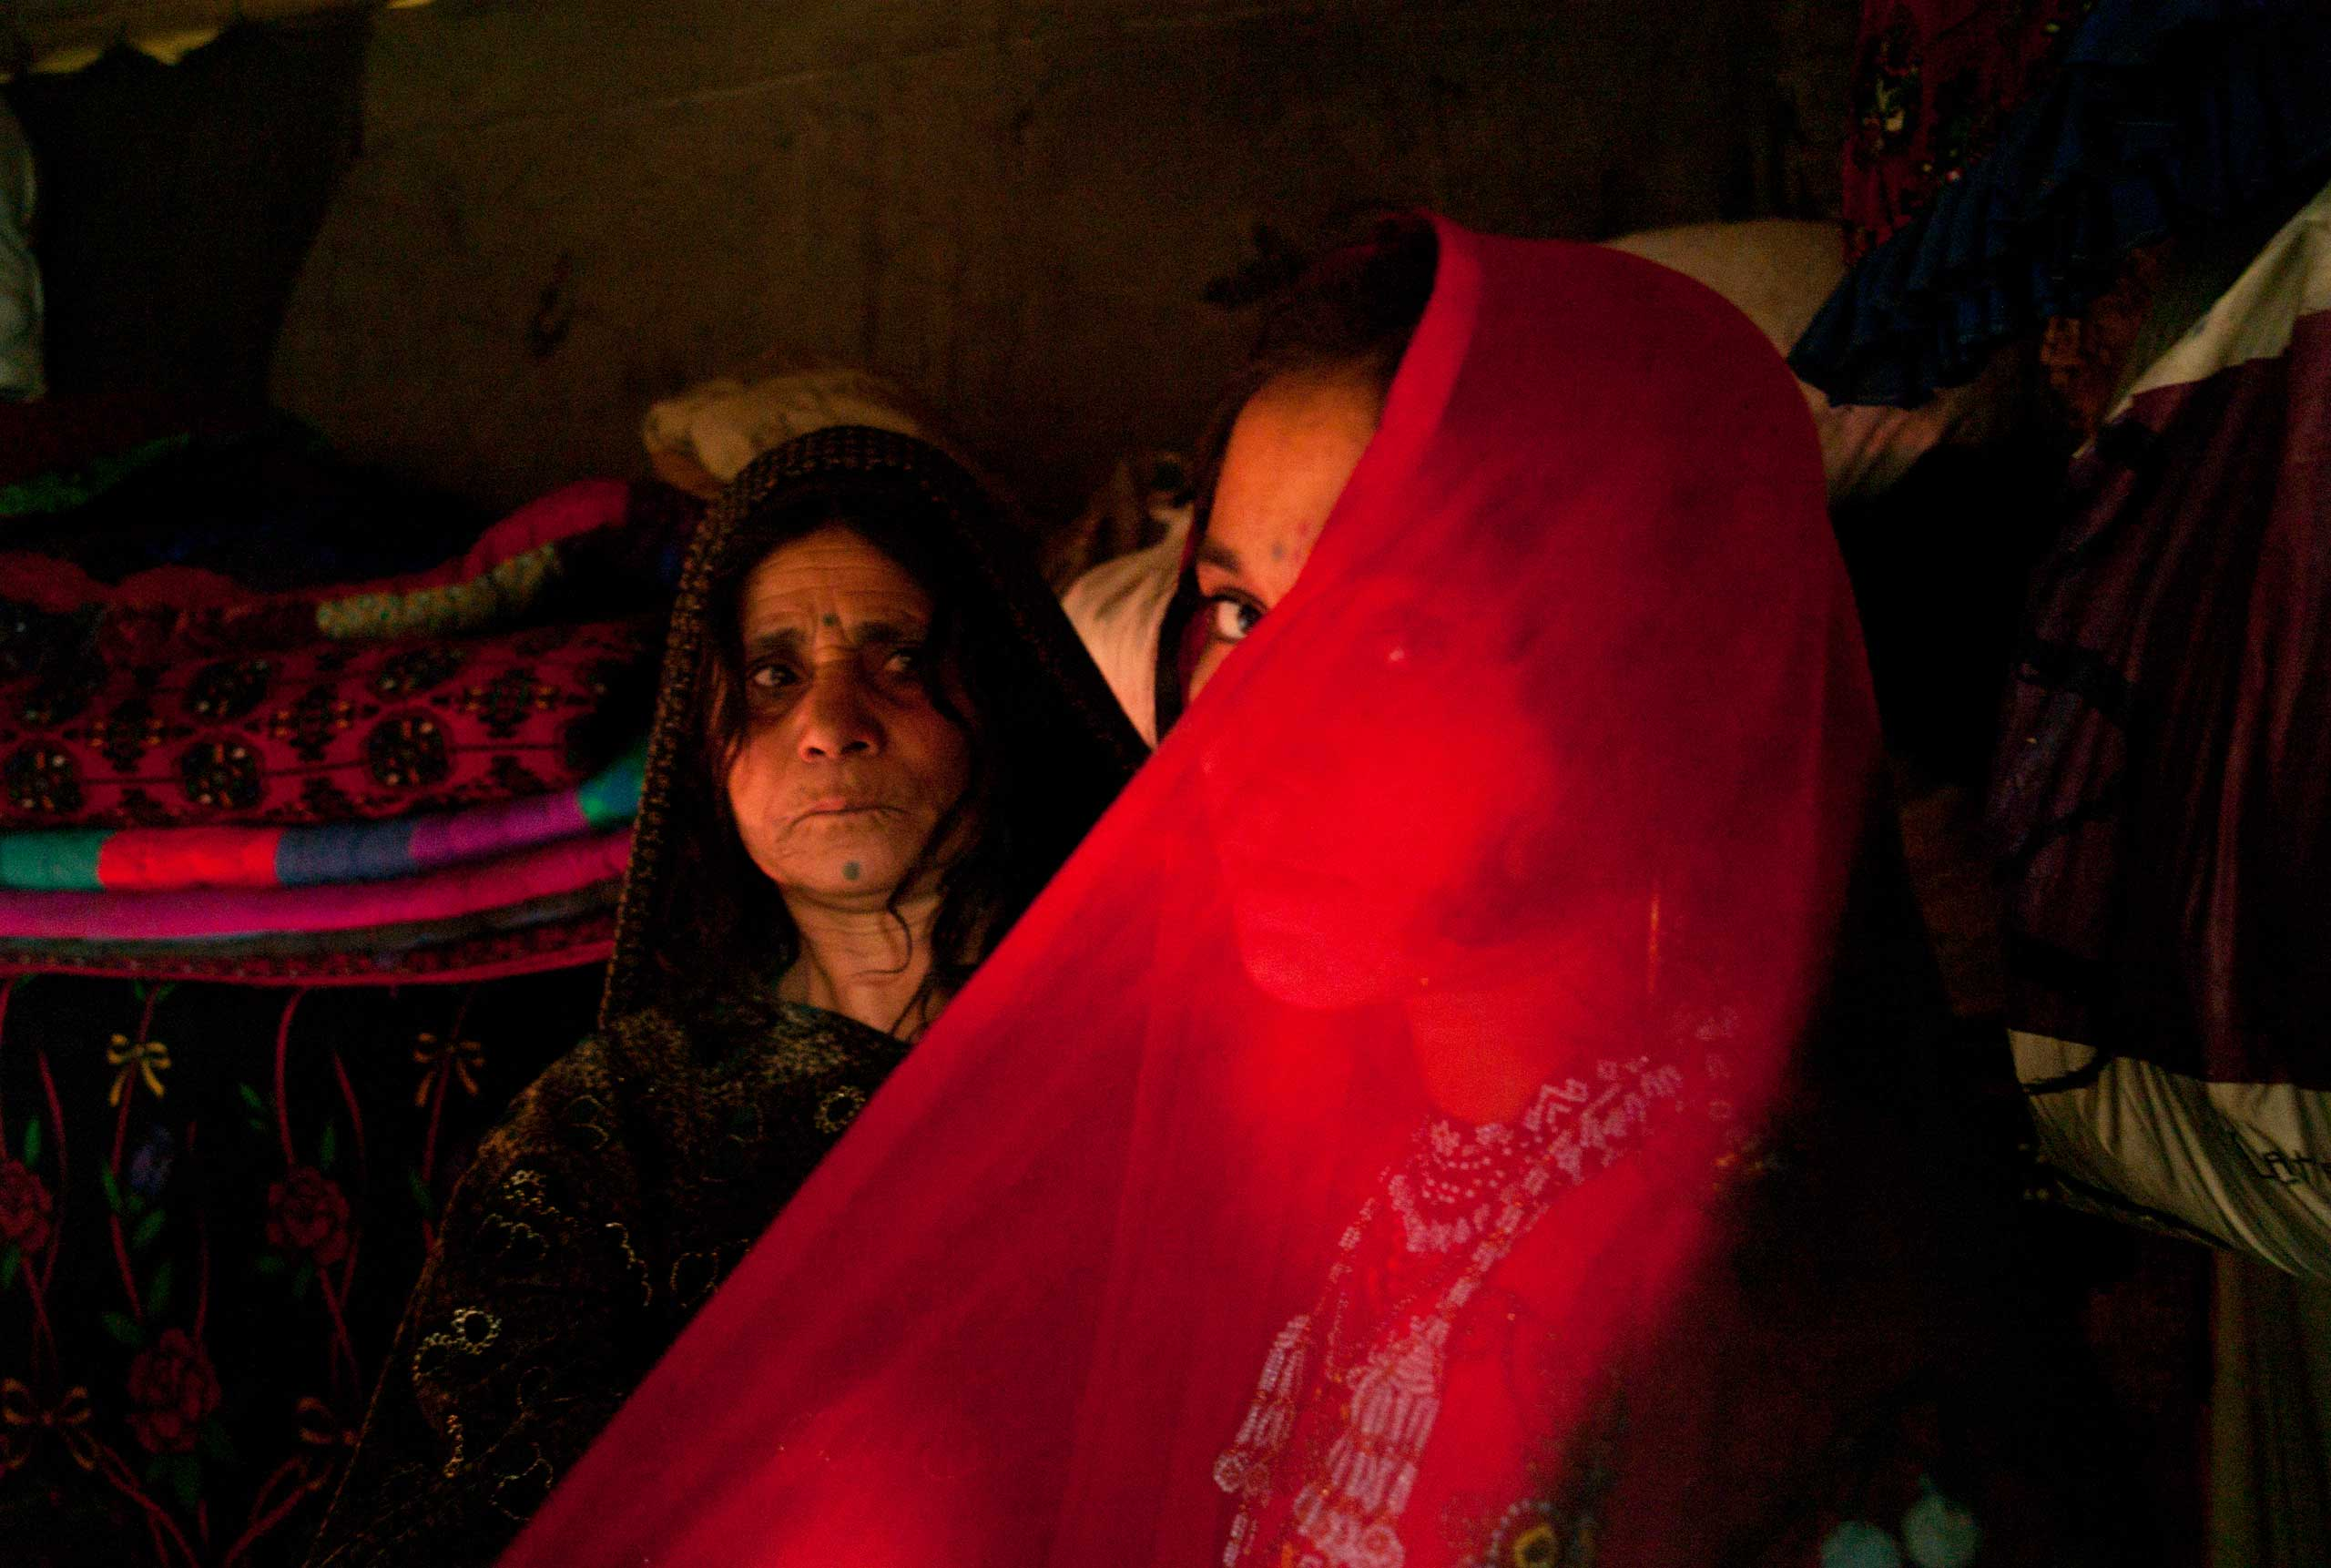 LAHORE, PAKISTAN- NOVEMBER 2009                               A few days ahead of her wedding, 14 year old Afghan refugee Zeenat Gul is helped by her mother as she tries on her hand made red beaded wedding dress at their one room home in the slums of Sagiam Pull.                               One of ten siblings, Zeenat was born at the refugee camp of Kohart in Pakistan's North West Frontier Province after her family fled fighting in Kunduz.                               Zeenat Gul has yet to meet her fiance but has been busy making her in-laws to be gifts of beaded combs, mirrors and jewelry. Now liberated from her work in the dump, her mother Barangul has been advising her teenage daughter about marriage. The sensitive topic of sex will not be raised until the wedding night,  When a girl marries, then she will become a woman .